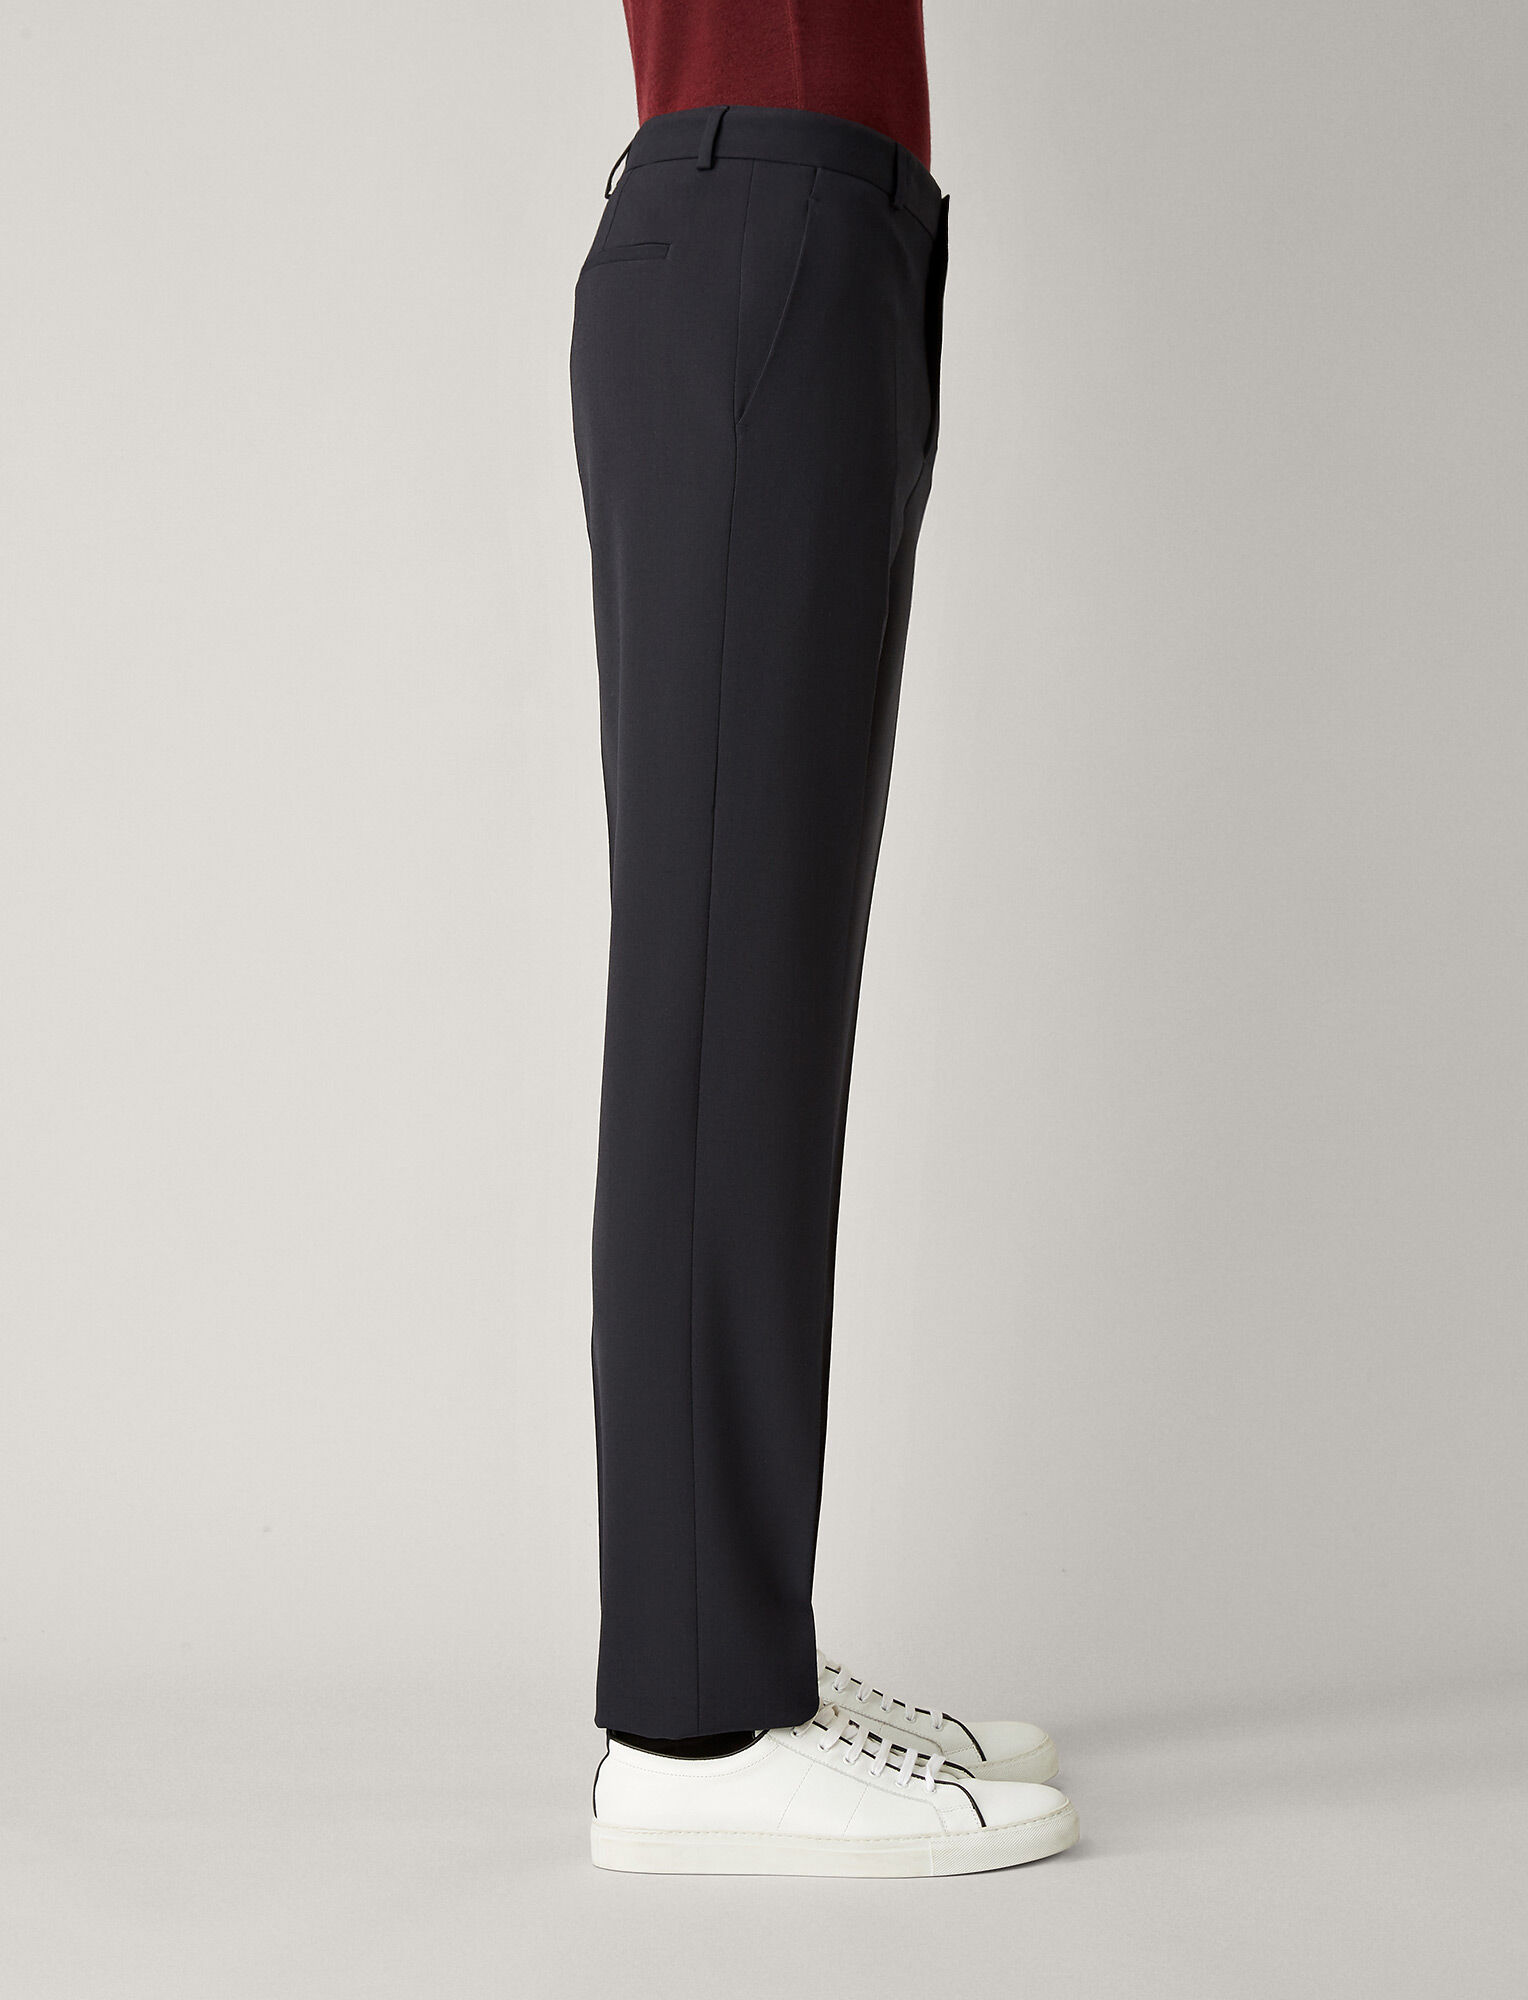 Joseph, Pantalon Jack en laine techno stretch, in NAVY